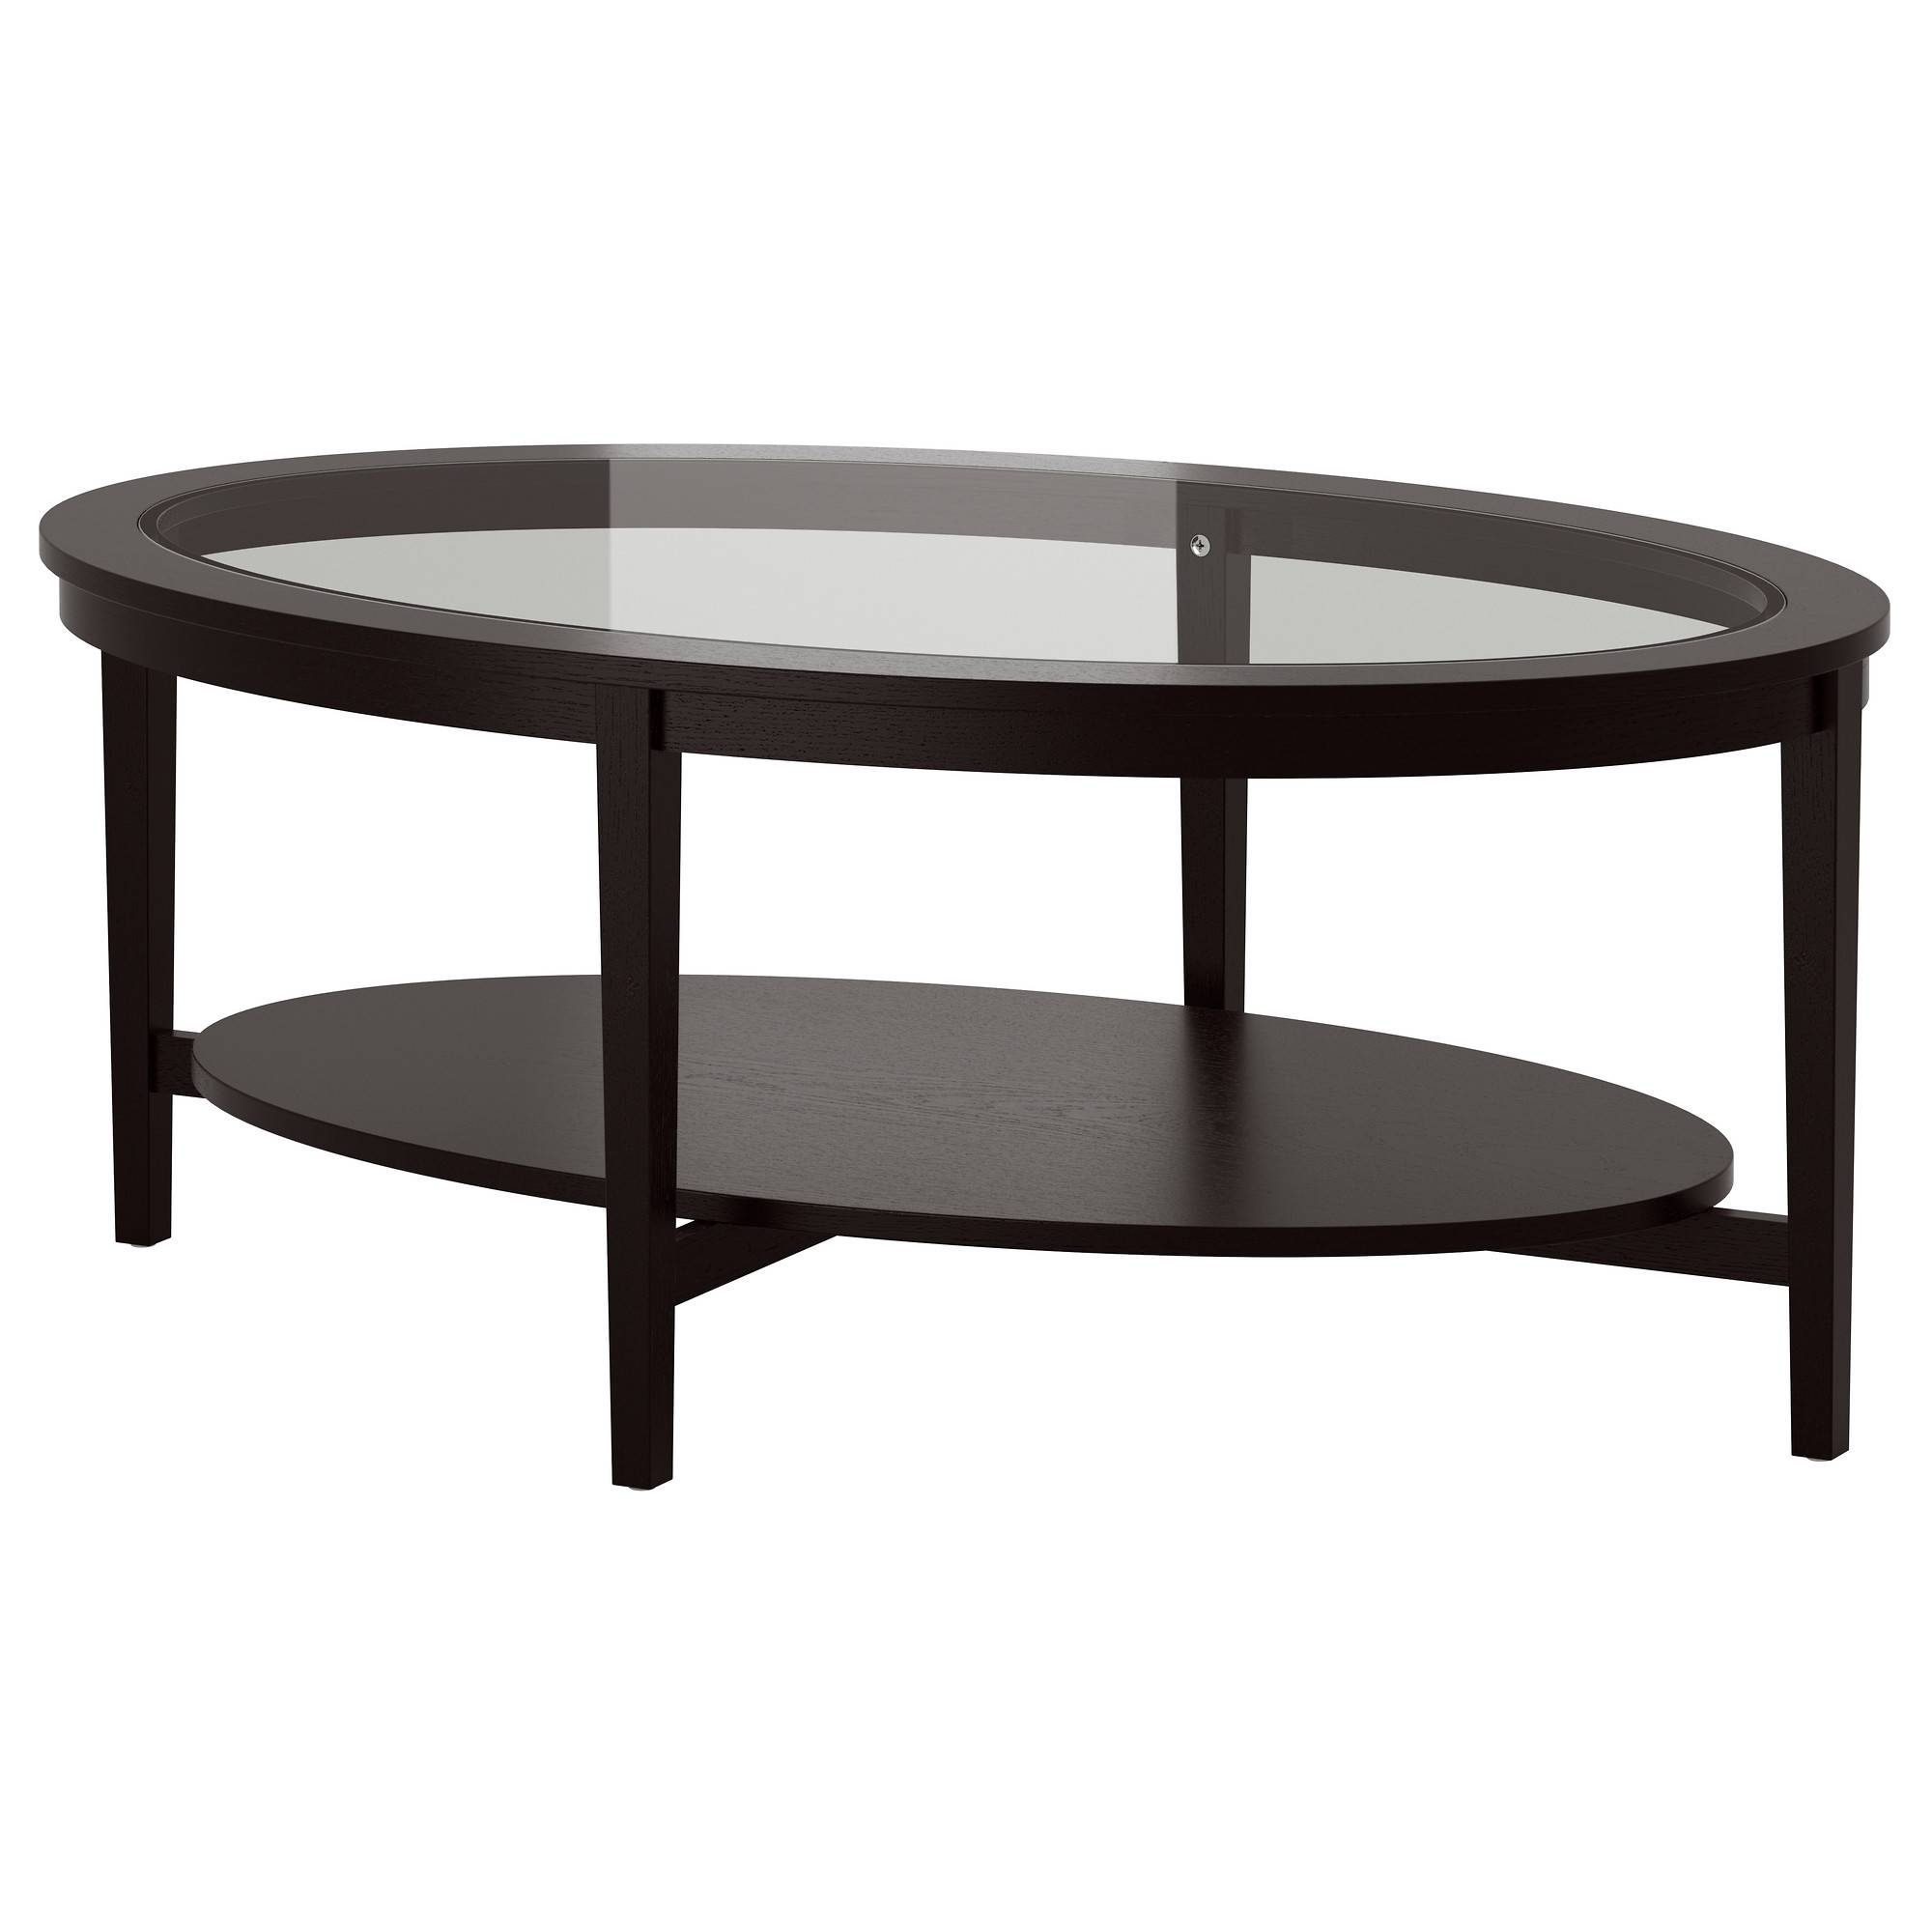 Coffee Tables & Console Tables - Ikea in Black Oval Coffee Tables (Image 13 of 30)